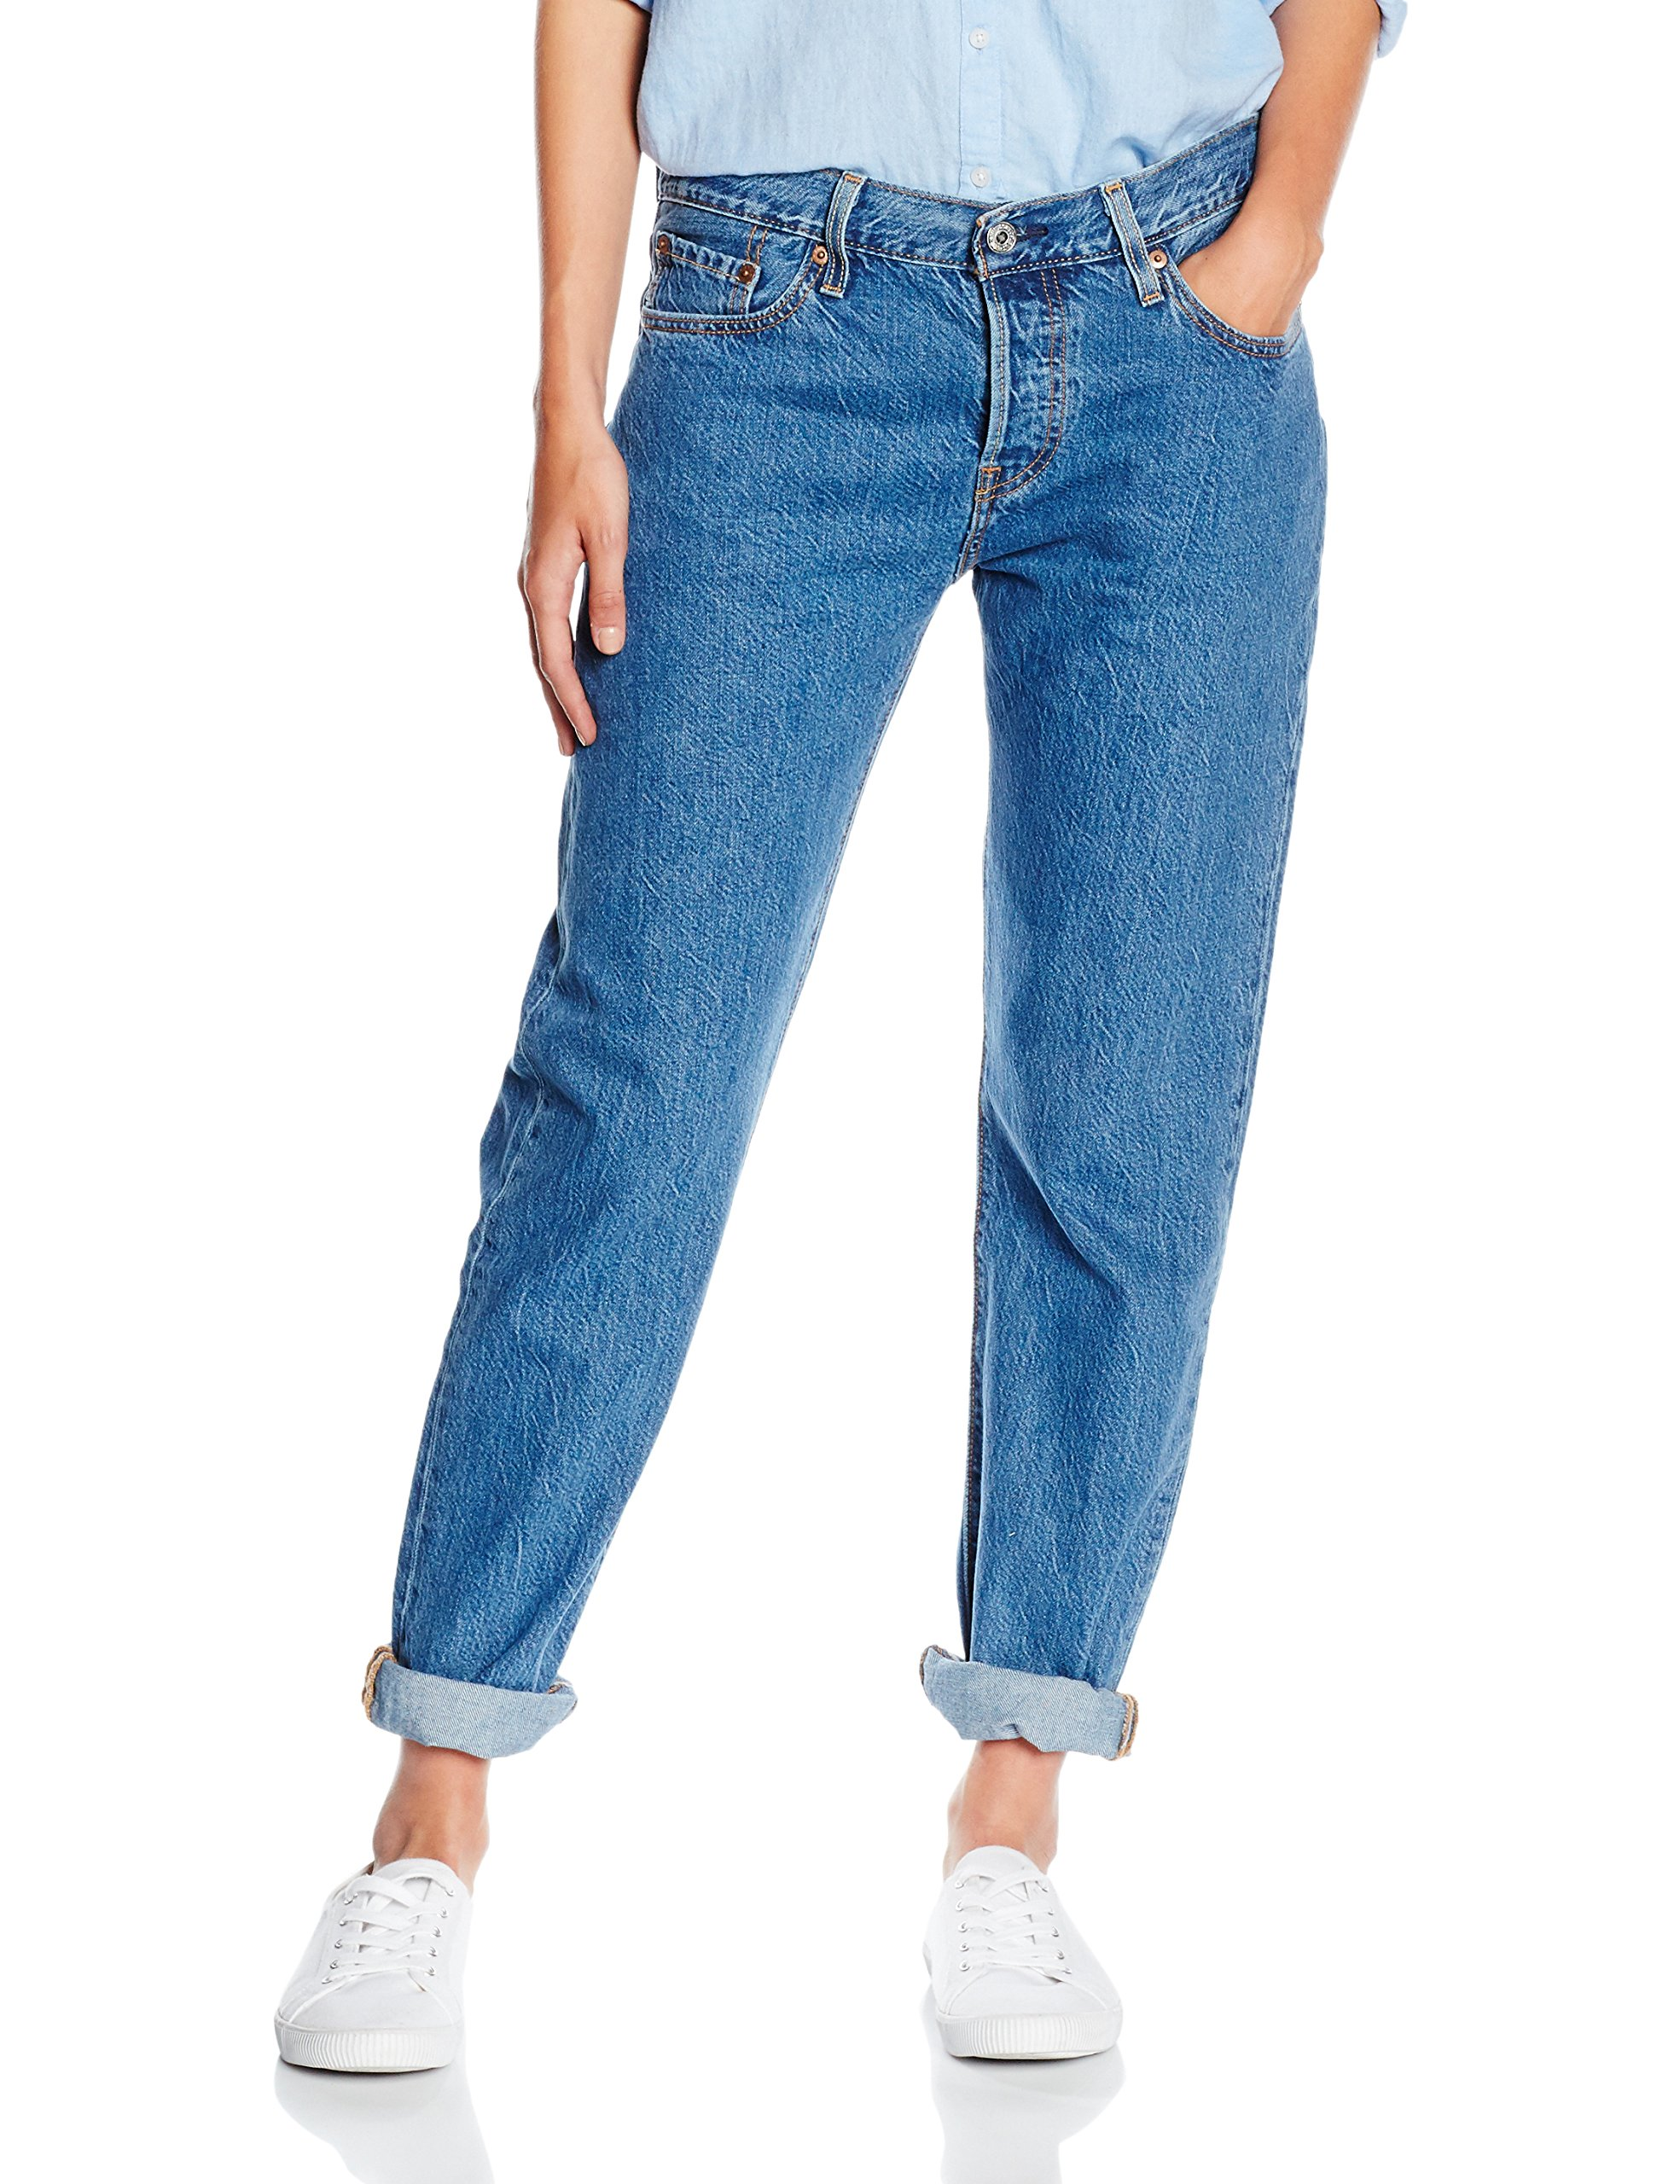 501 FemmeBleusurf Levi's ShackW28 l34taille CtJeans Fabricant28 IYWED92eHb